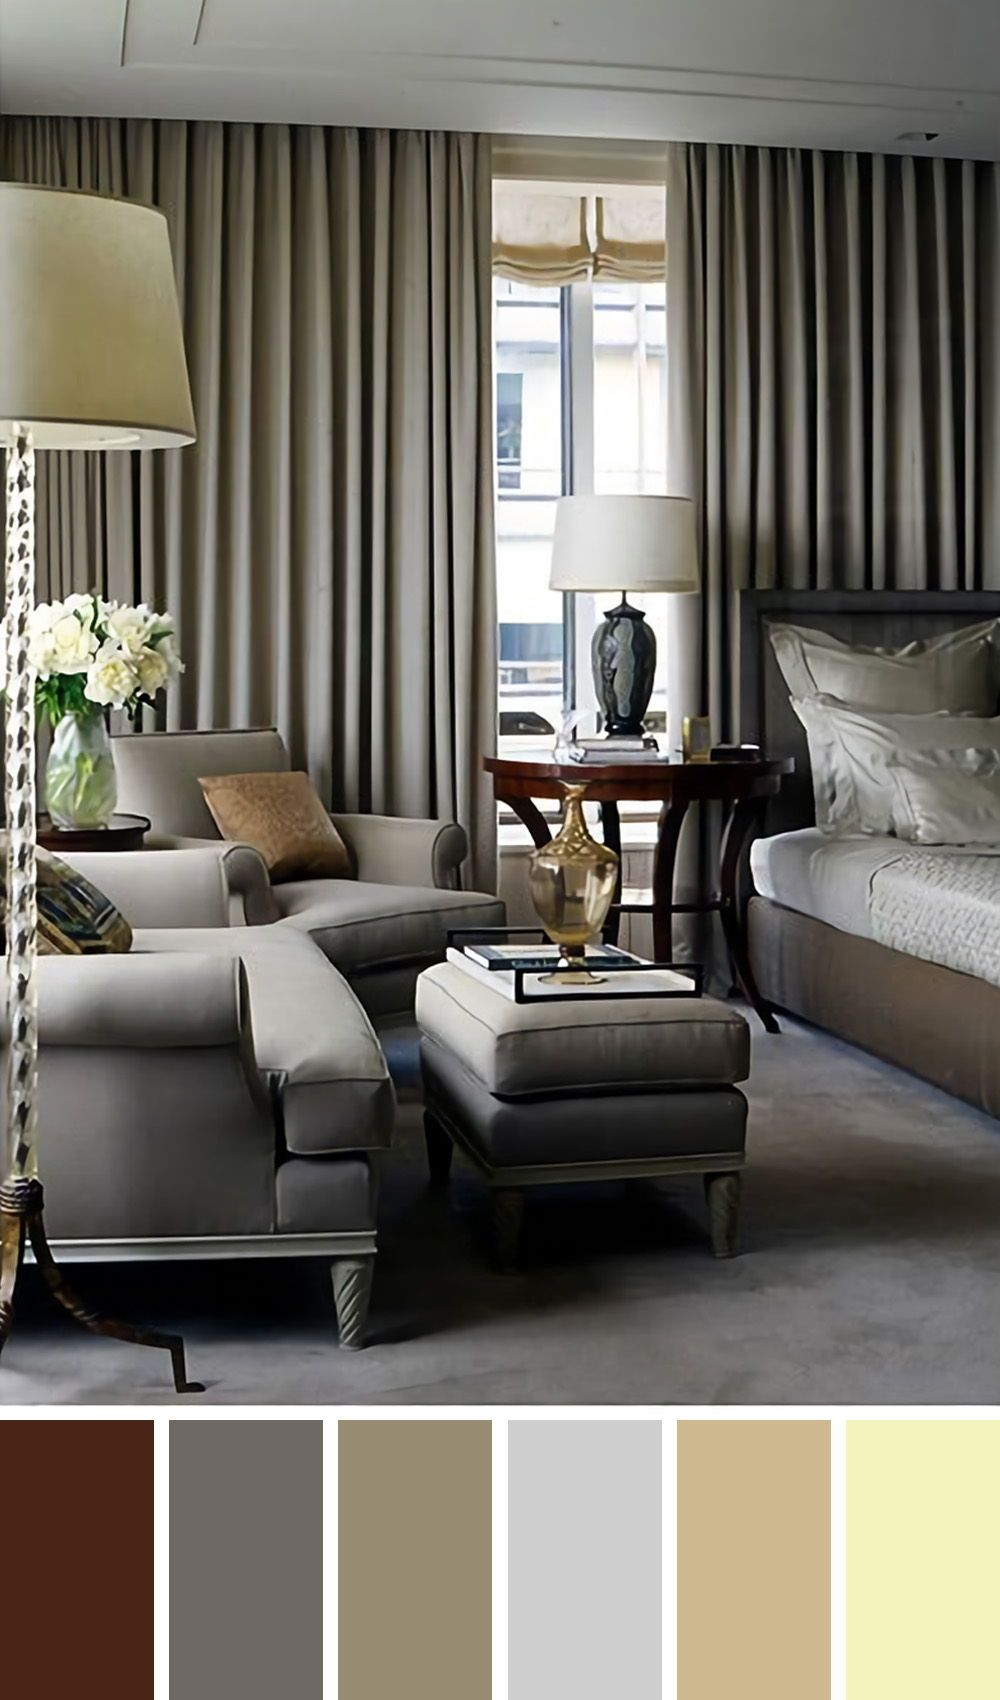 25 Gorgeous Living Room Color Schemes To Make Your Room Cozy Living Room Color Schemes Living Room Color Black Living Room Cozy living room colors